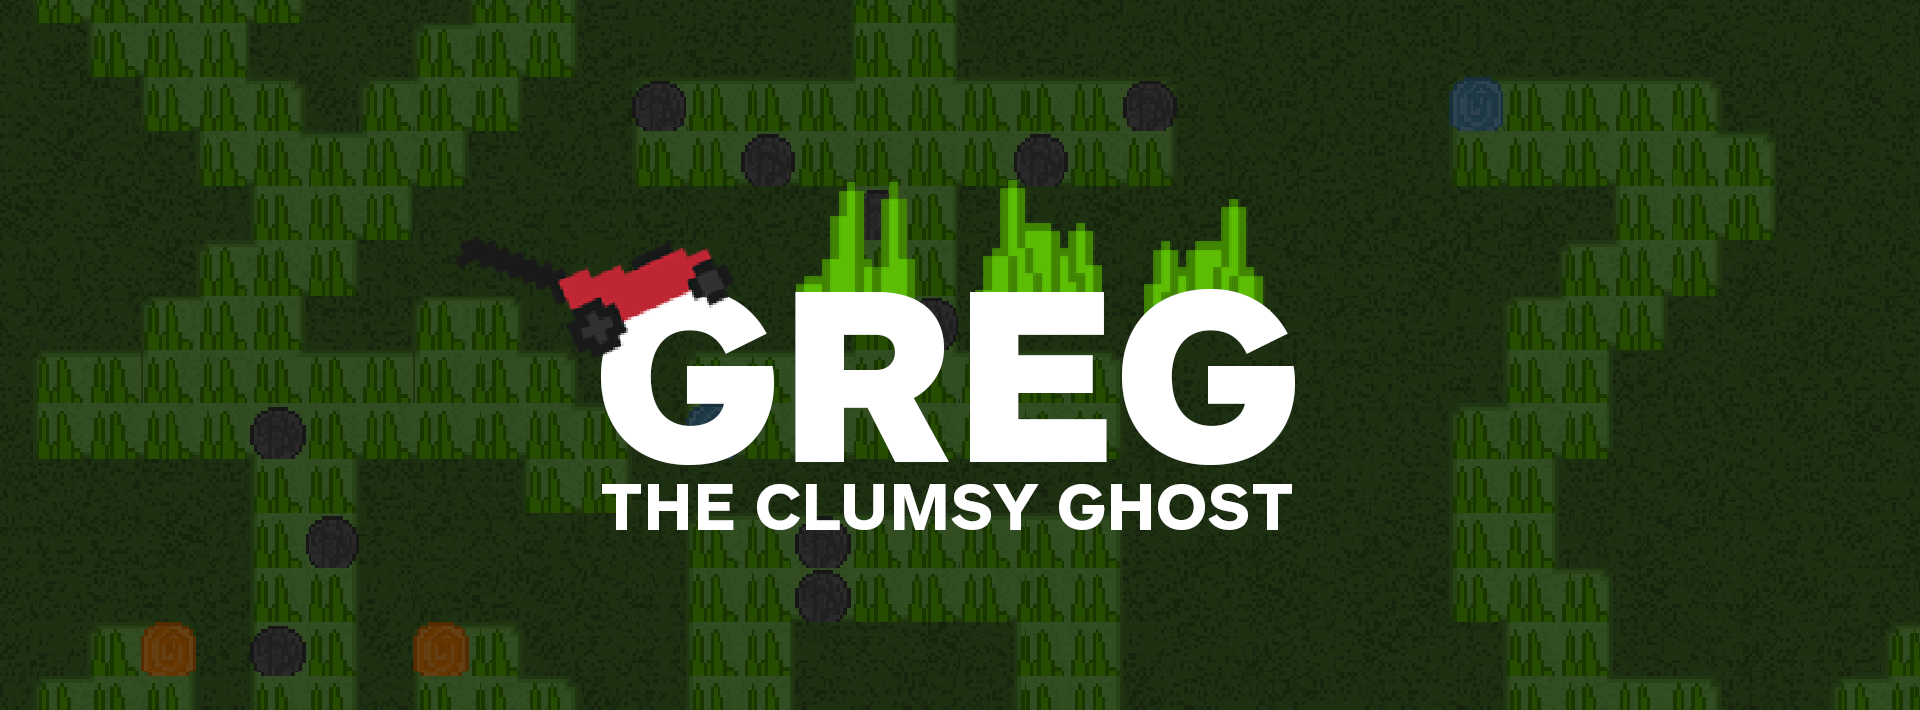 Greg the Clumsy Ghost